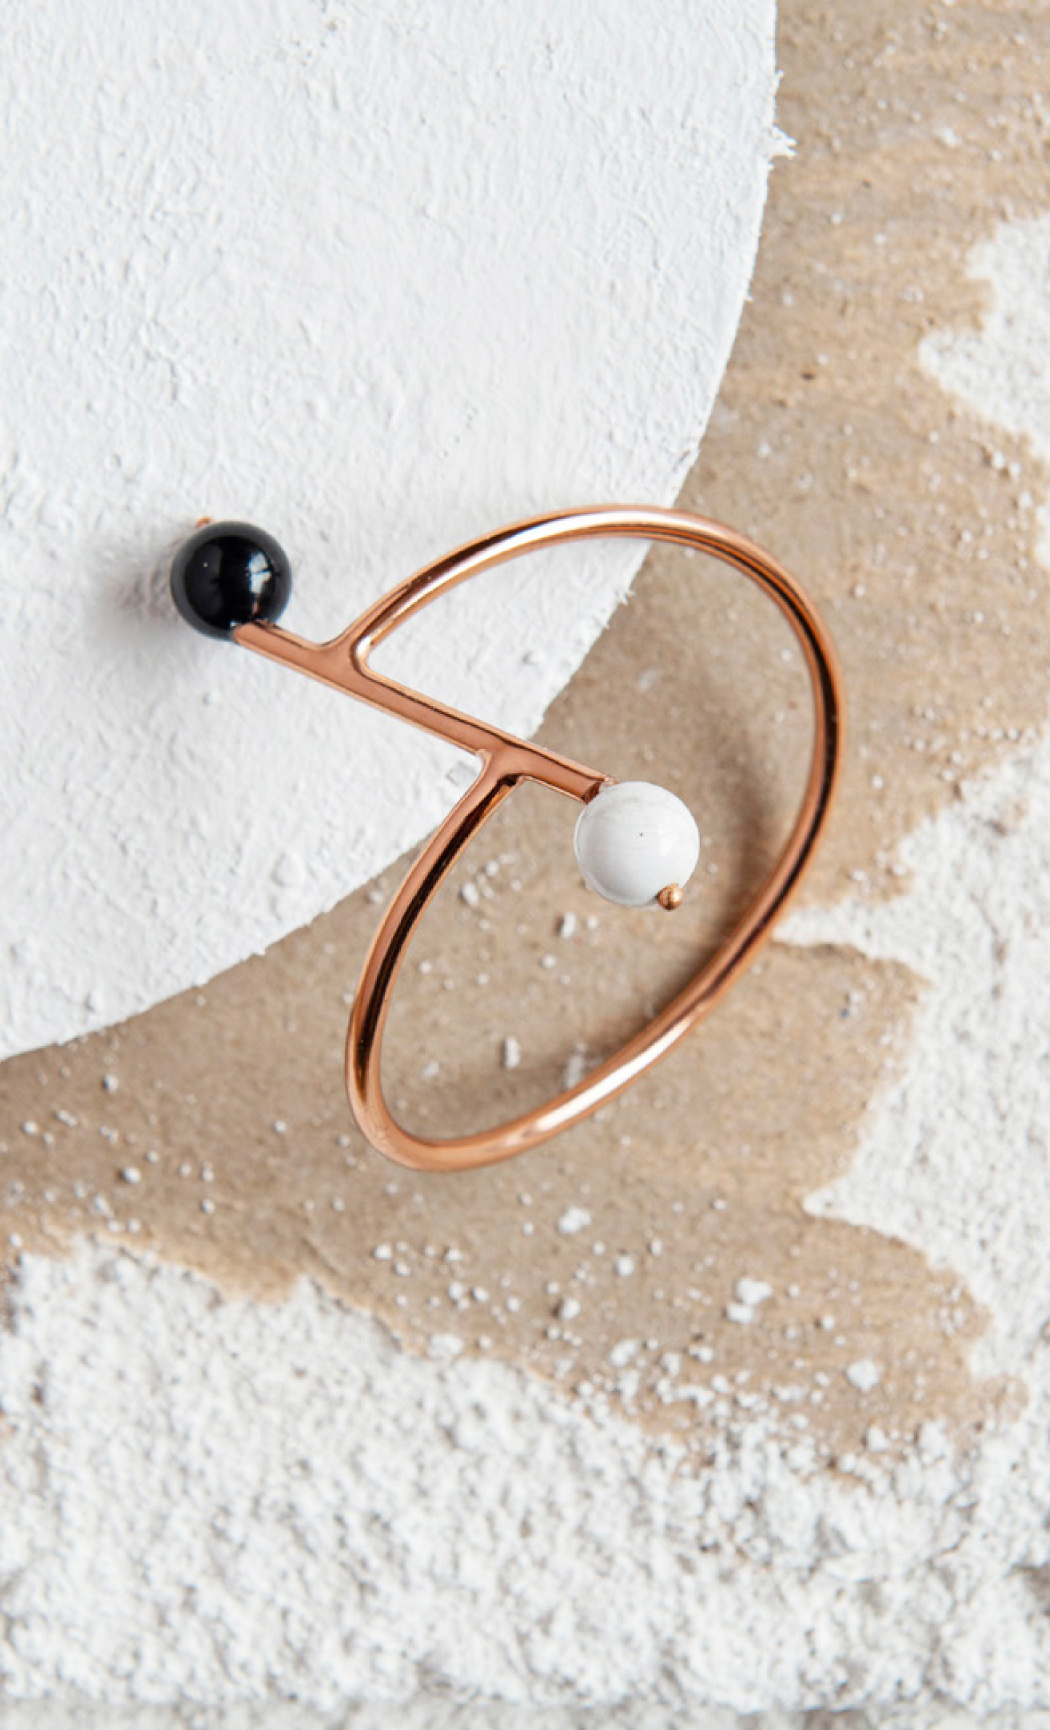 Black Onyx and Howlite Duo Ball Cuff Bracelet - Buy Now.